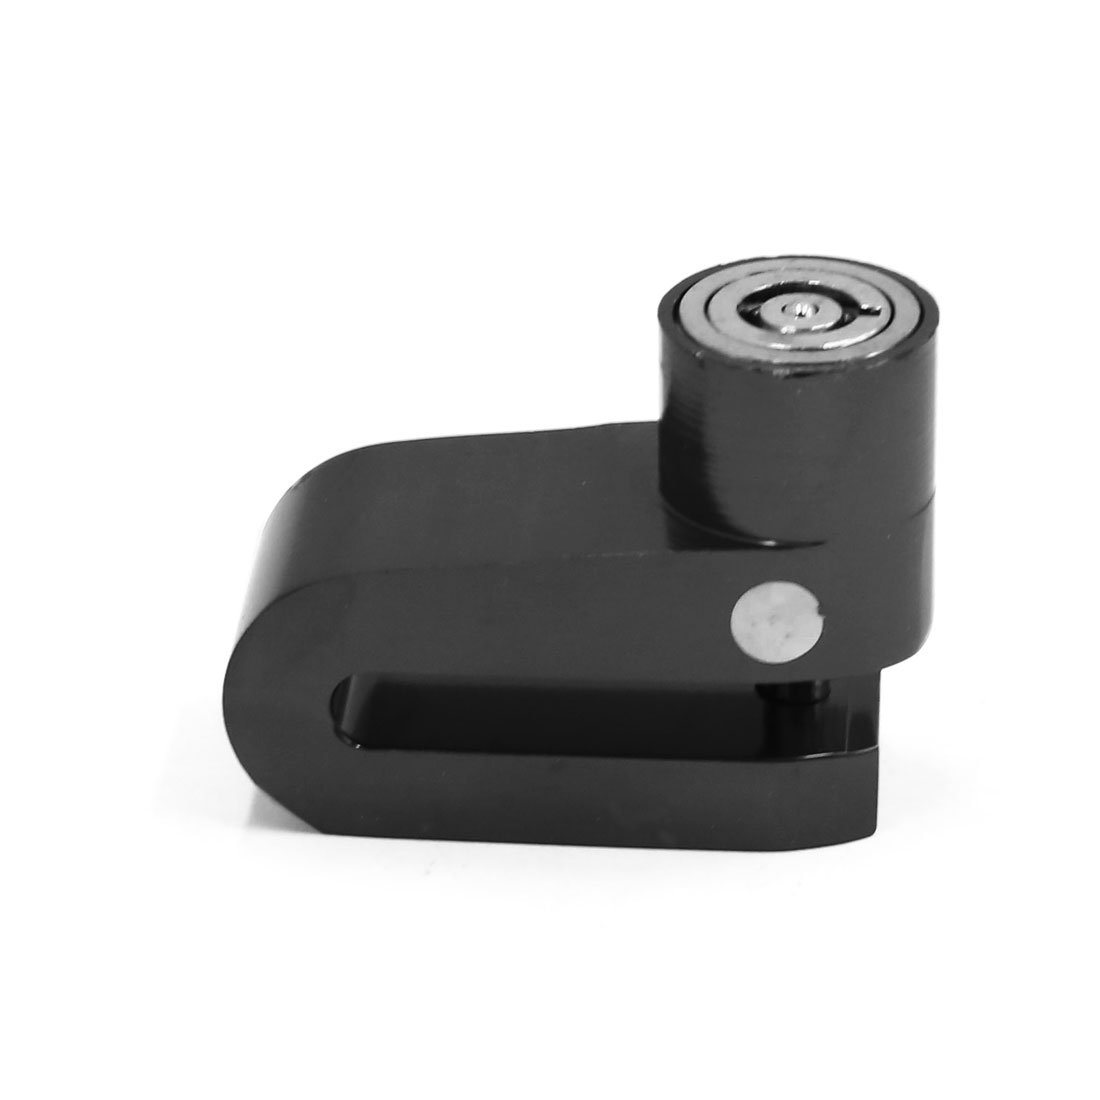 Uxcell a17062600ux0793 Motorcycle Lock